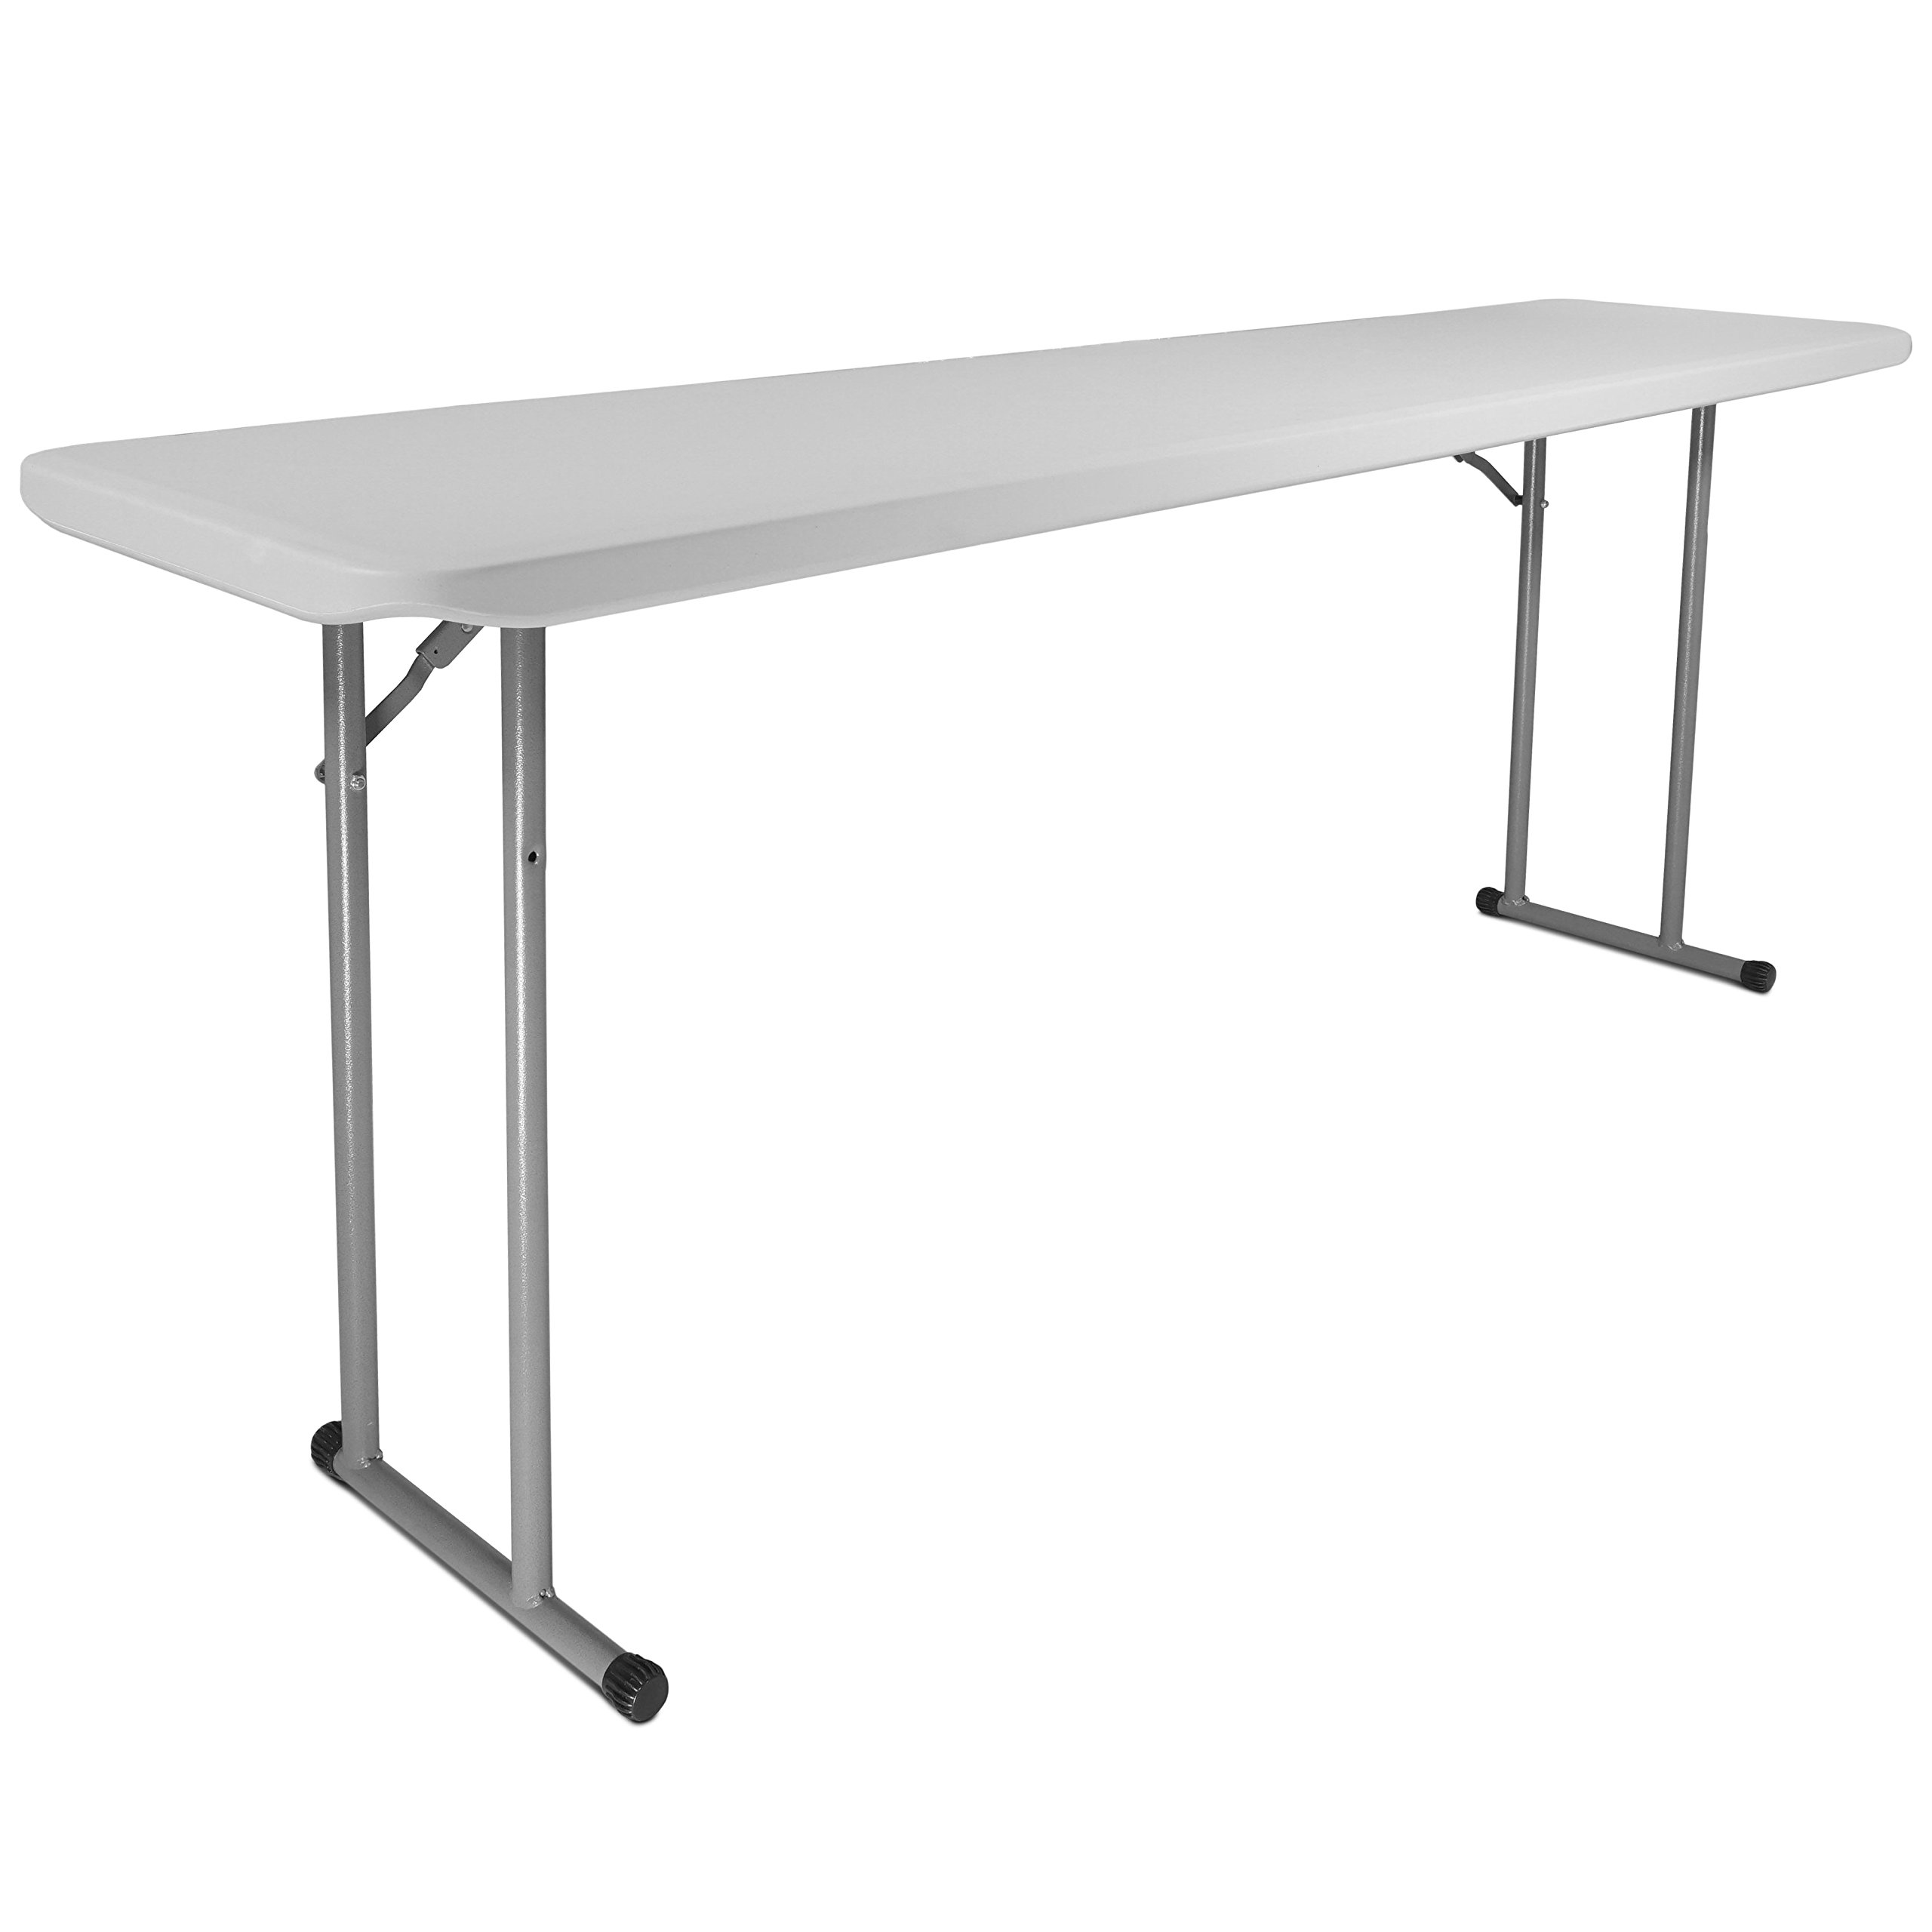 Titan 18''x72'' Plastic Seminar Table Speckled White Solid w/ Folding Legs Indoor